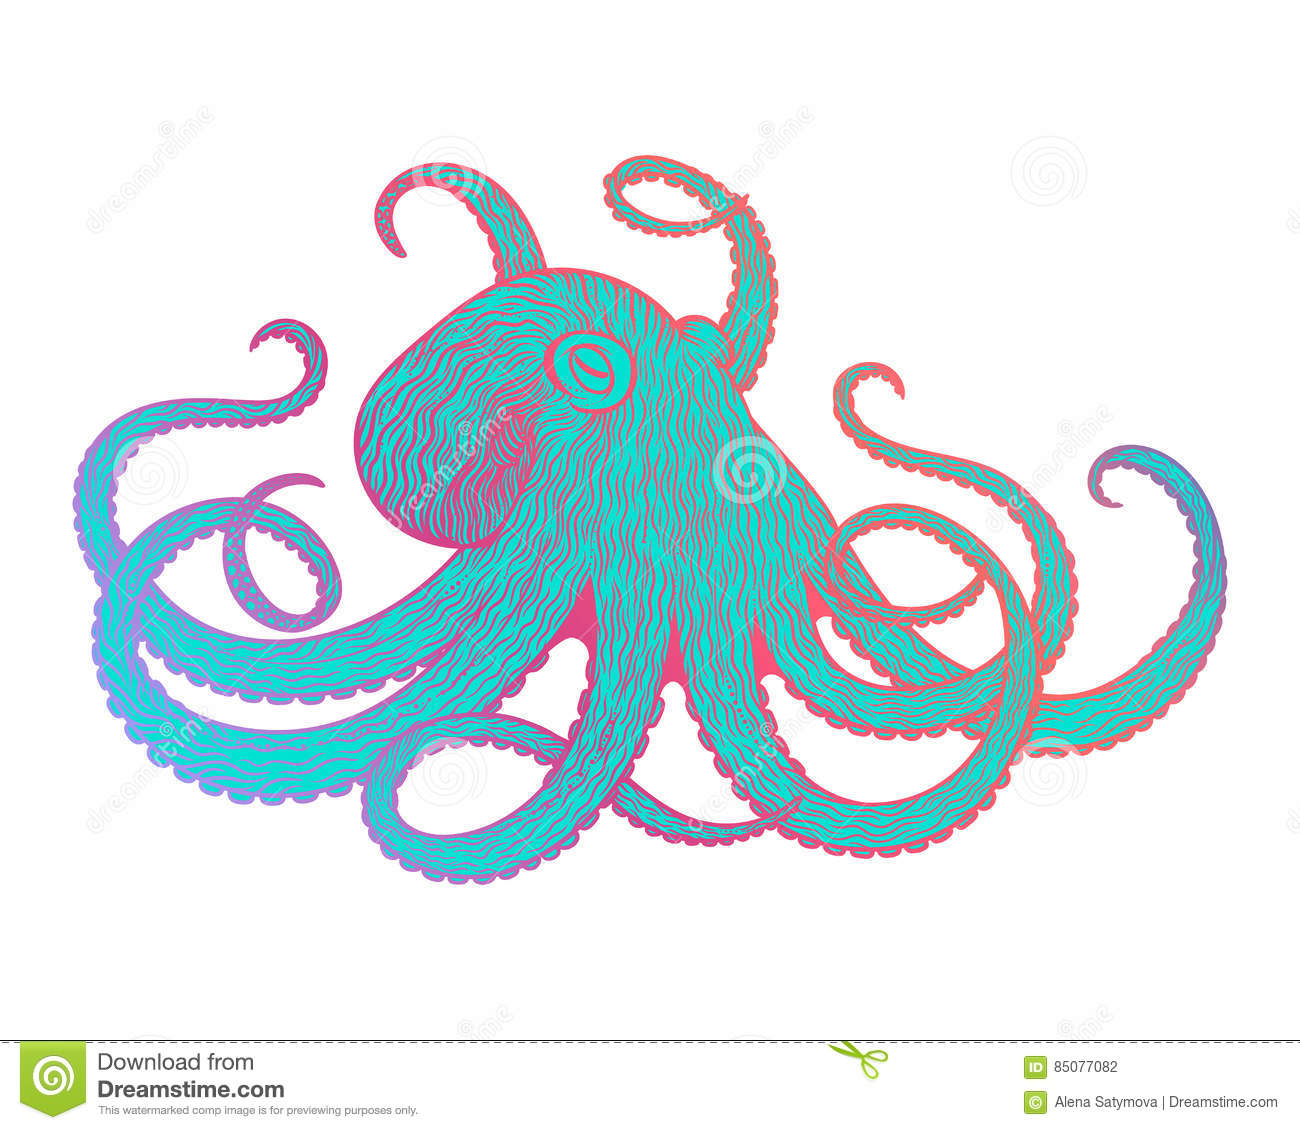 Shirt design octopus - Vector Illustration Of Octopus Line Art Style Design For T Shirt Posters